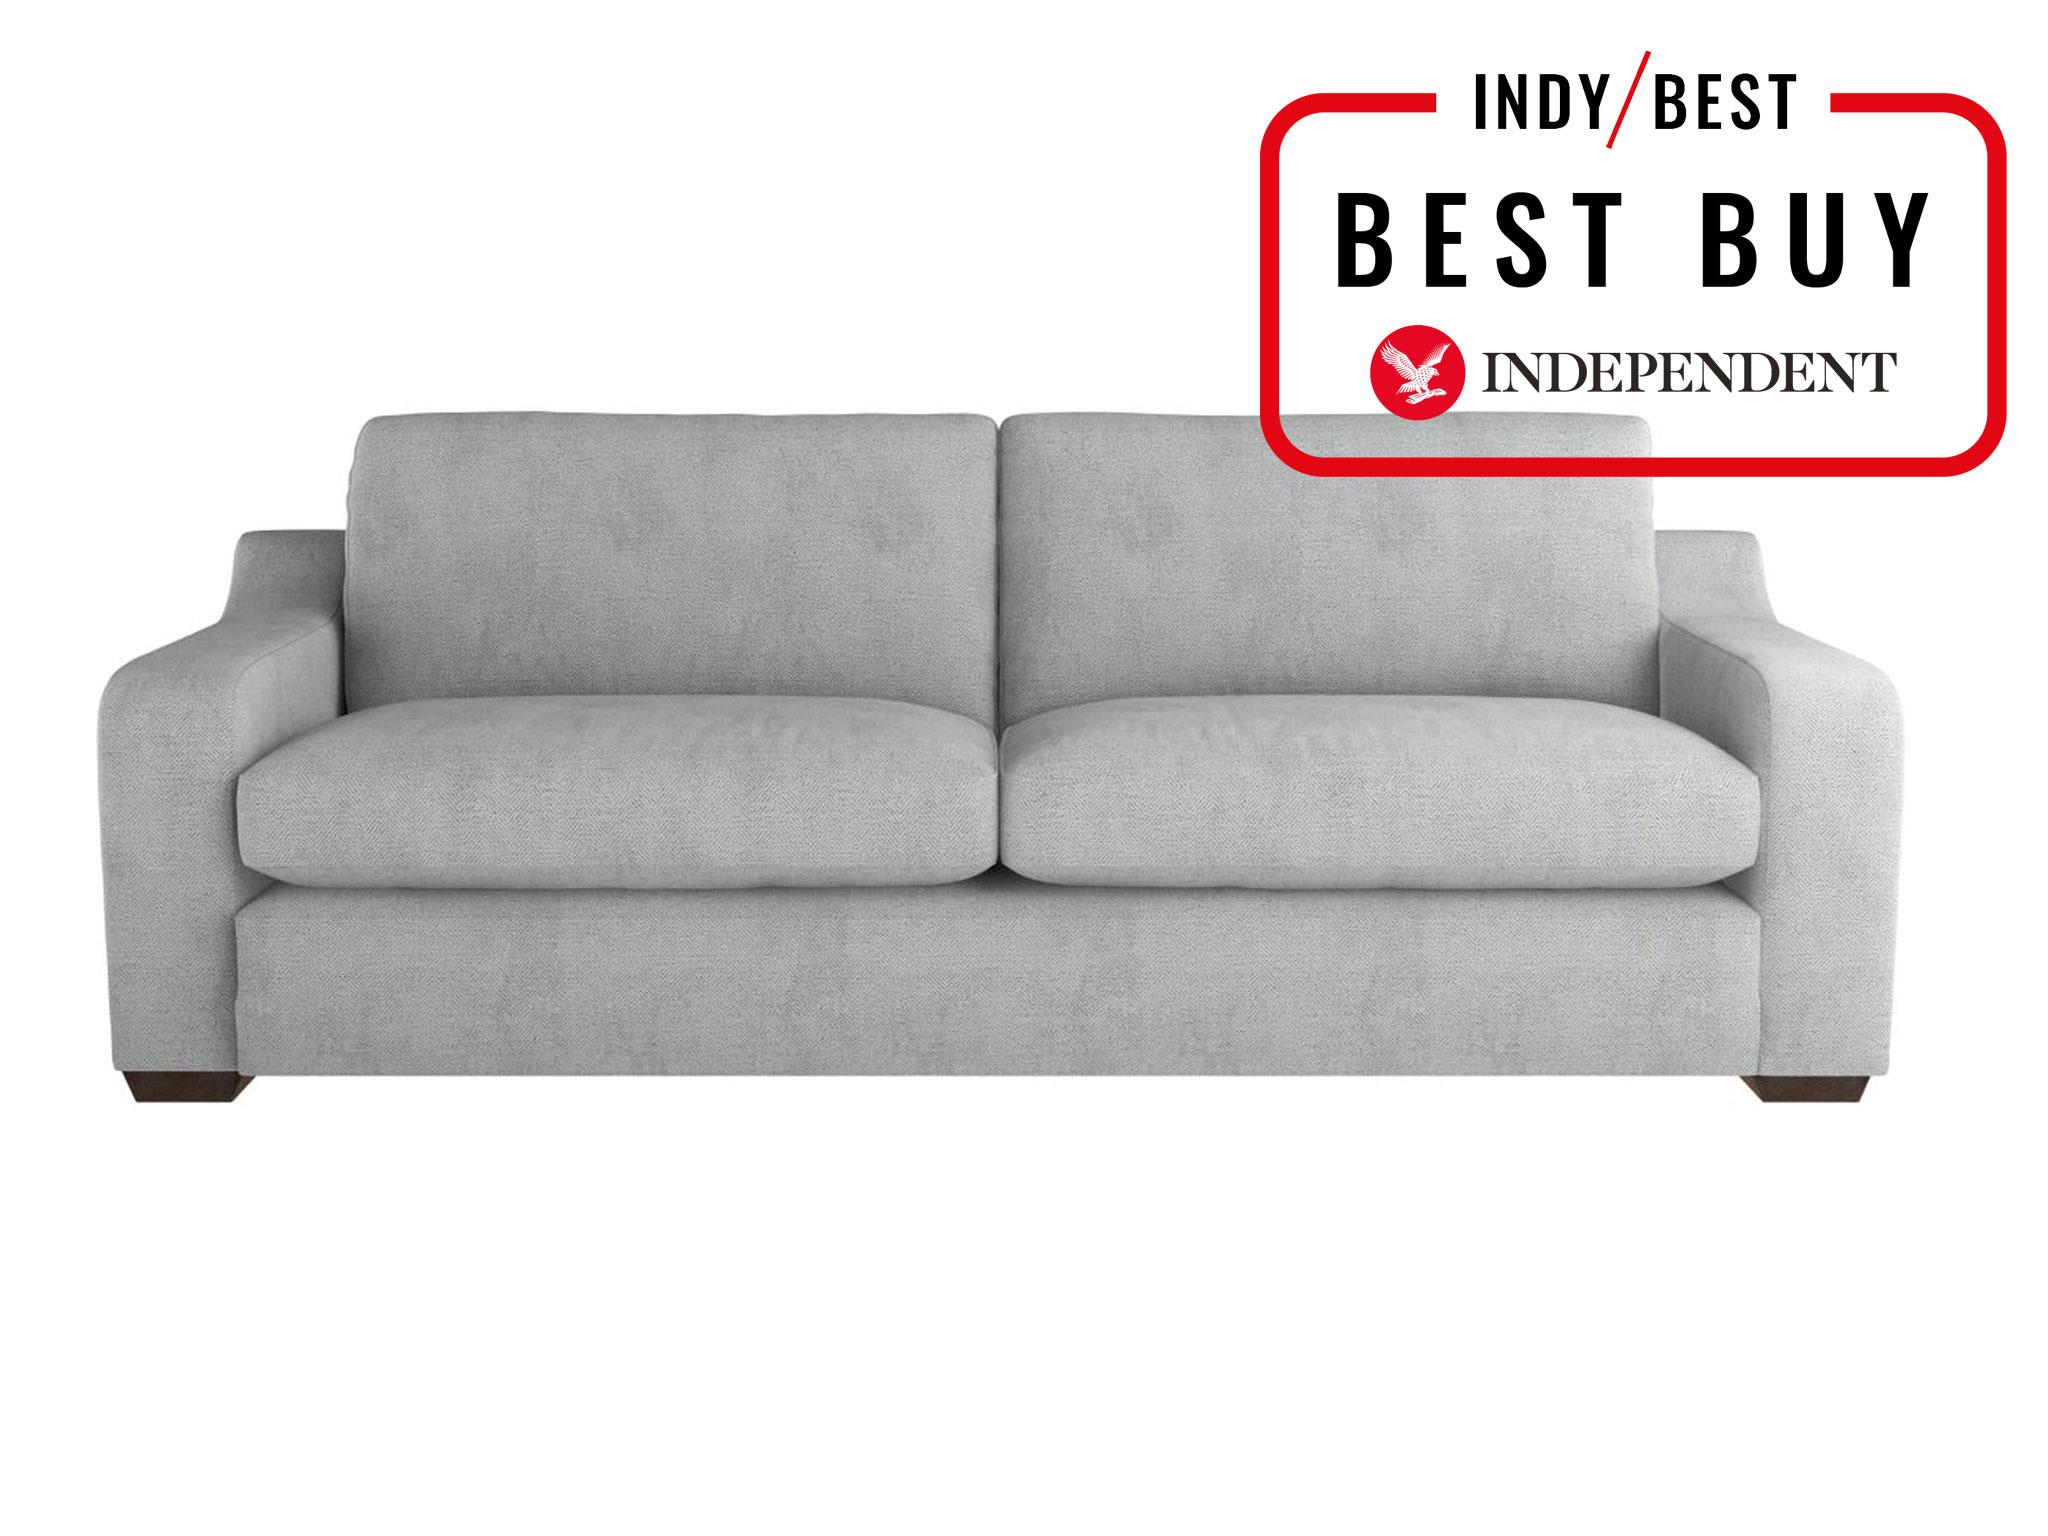 10 best sofas the independent rh independent co uk How Much Do Beds Cost Afull Average Cost of Bed